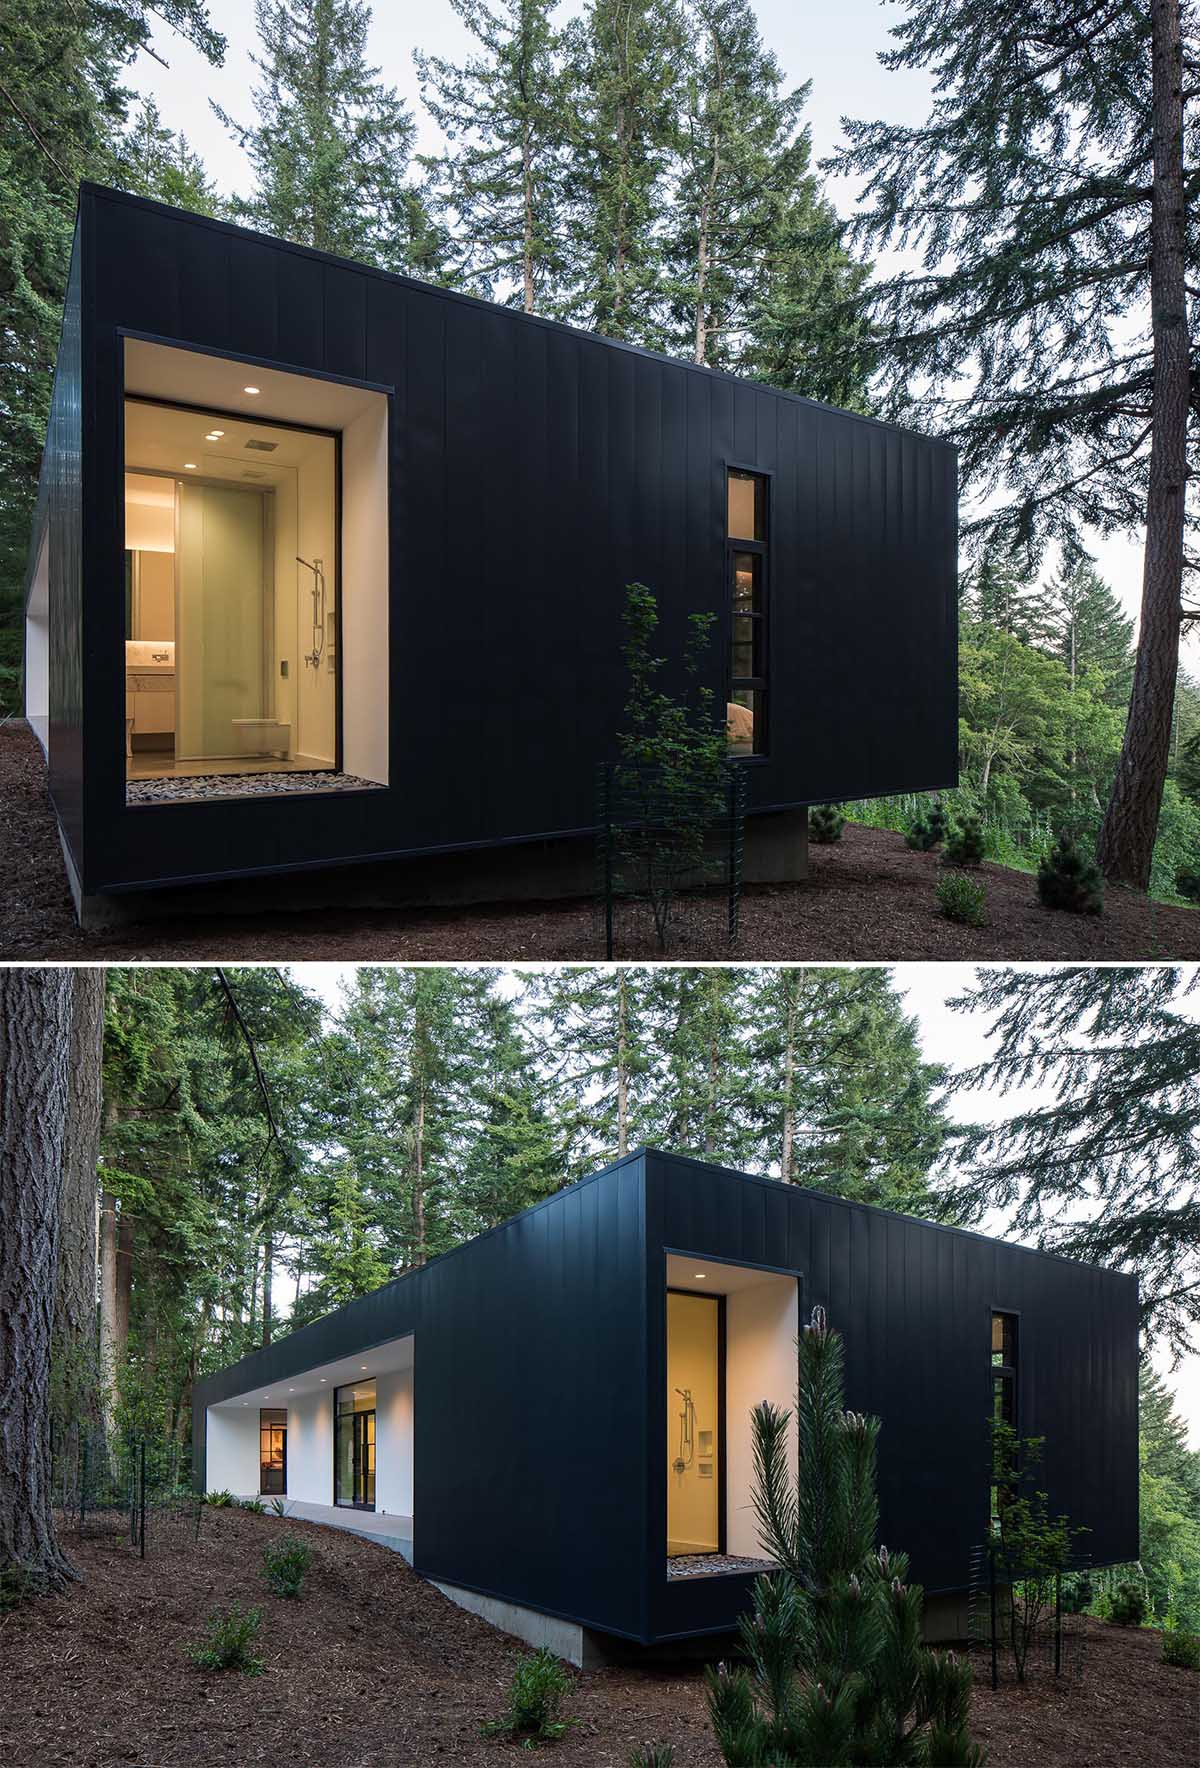 A small and modern home with white stucco and black metal panels on the exterior.